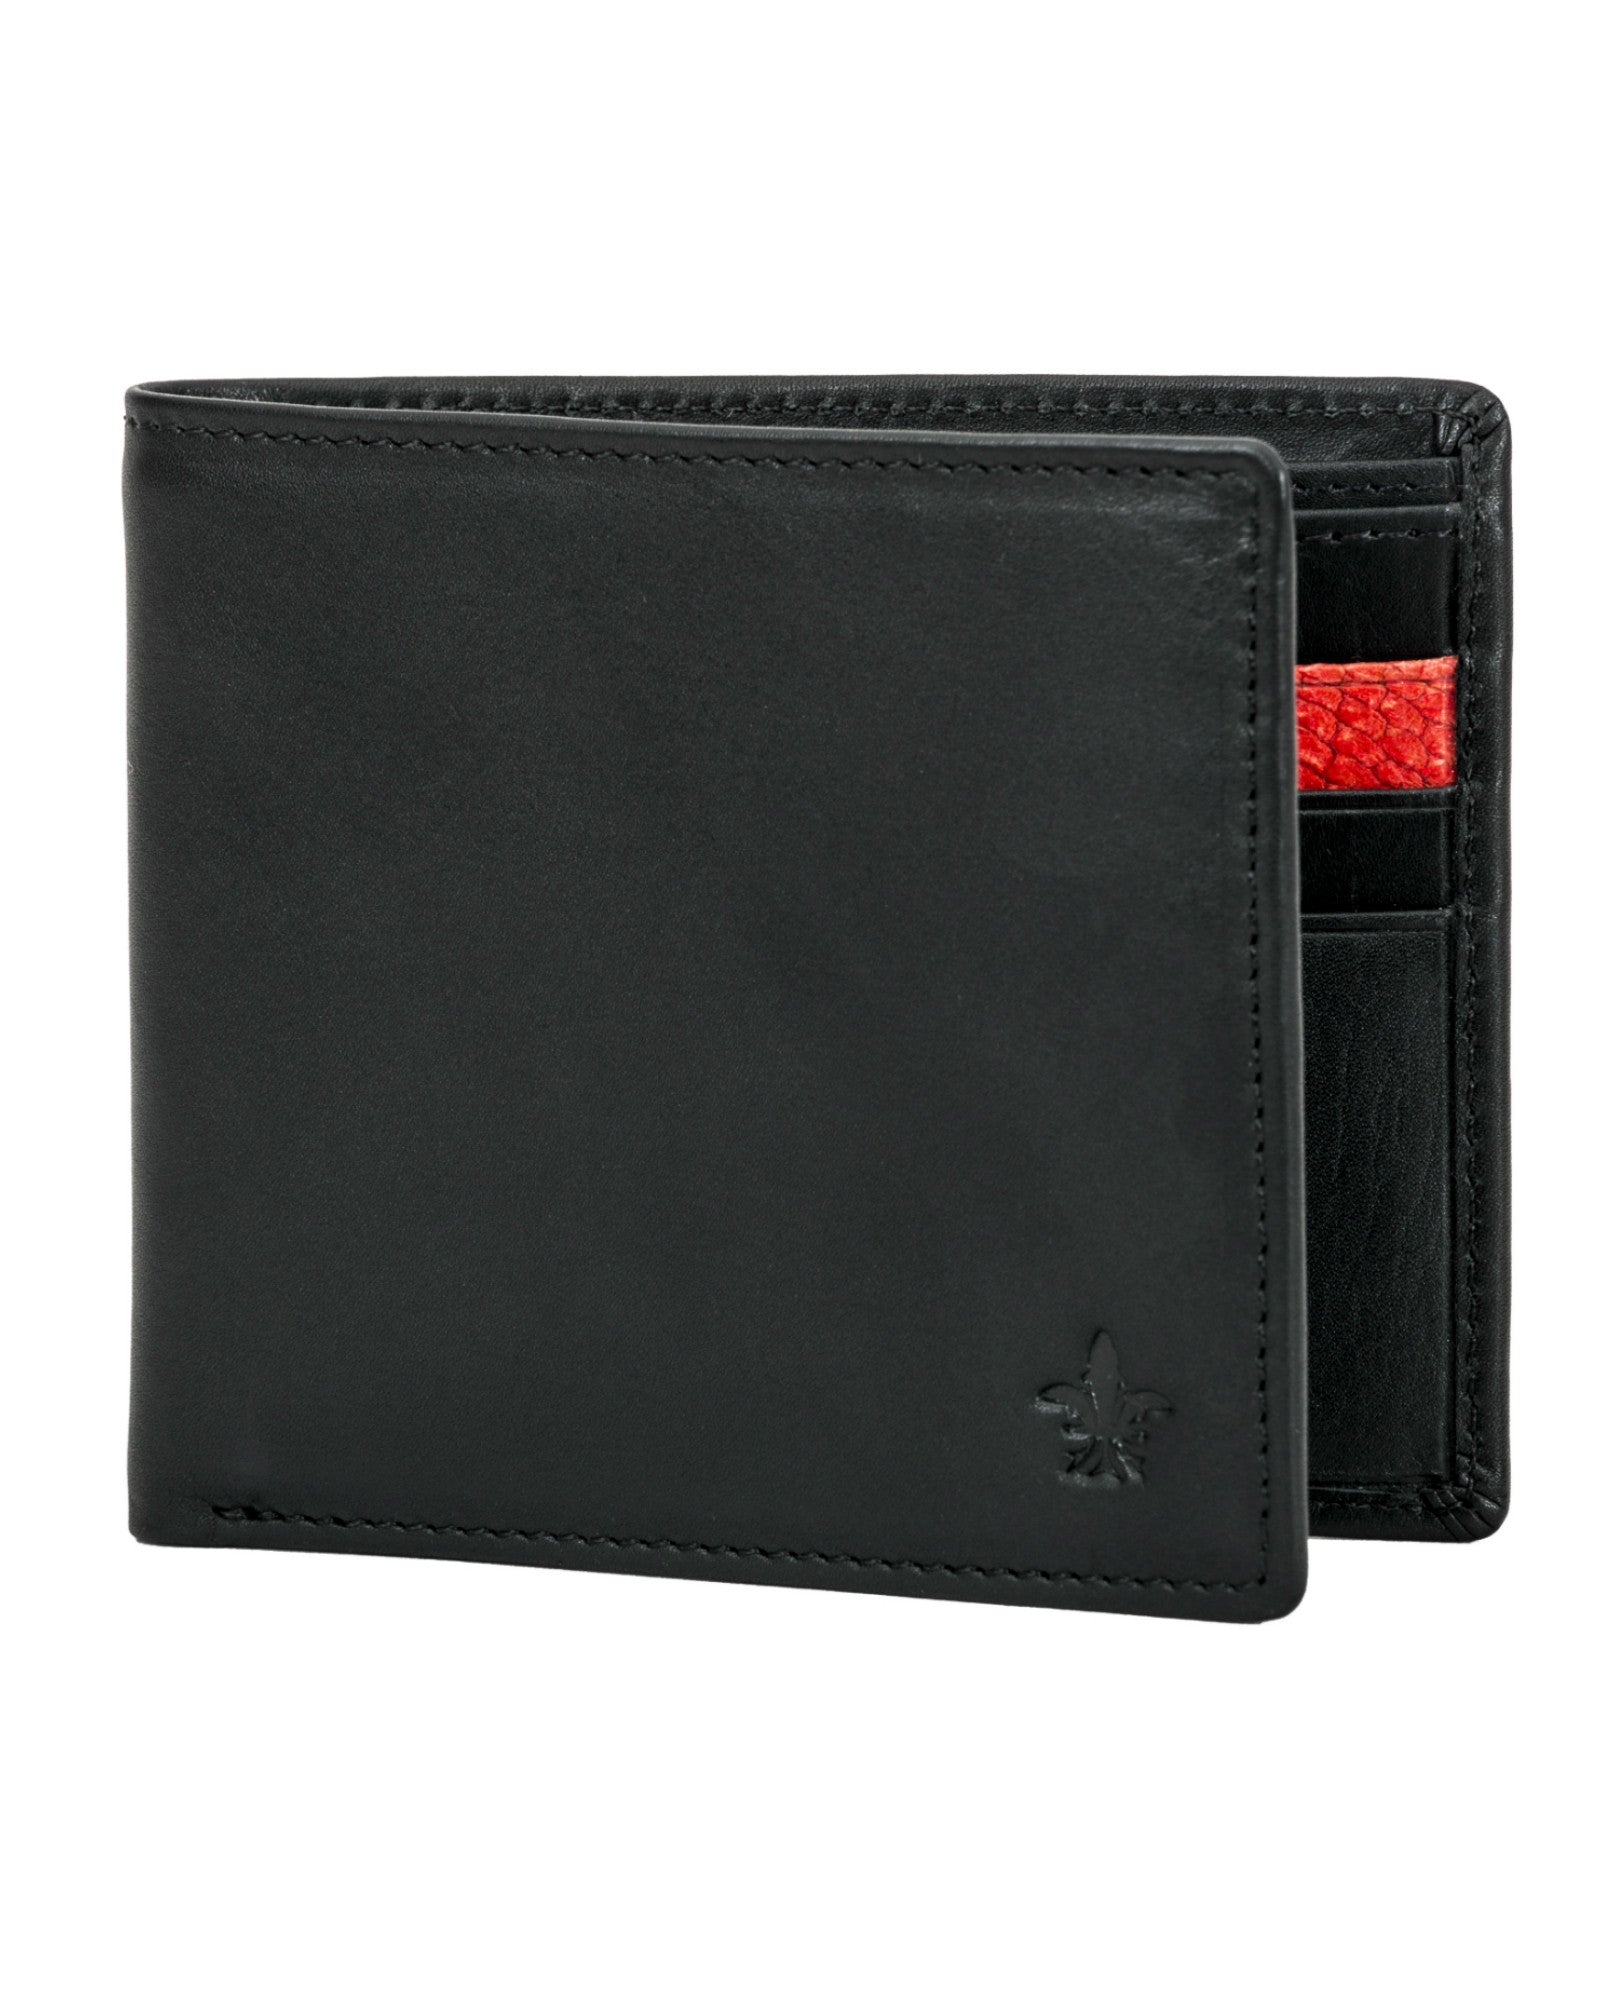 Creel Leather - Black Calf Leather Wallet, Red Zander Card Slot - The Velvet Closet - 1